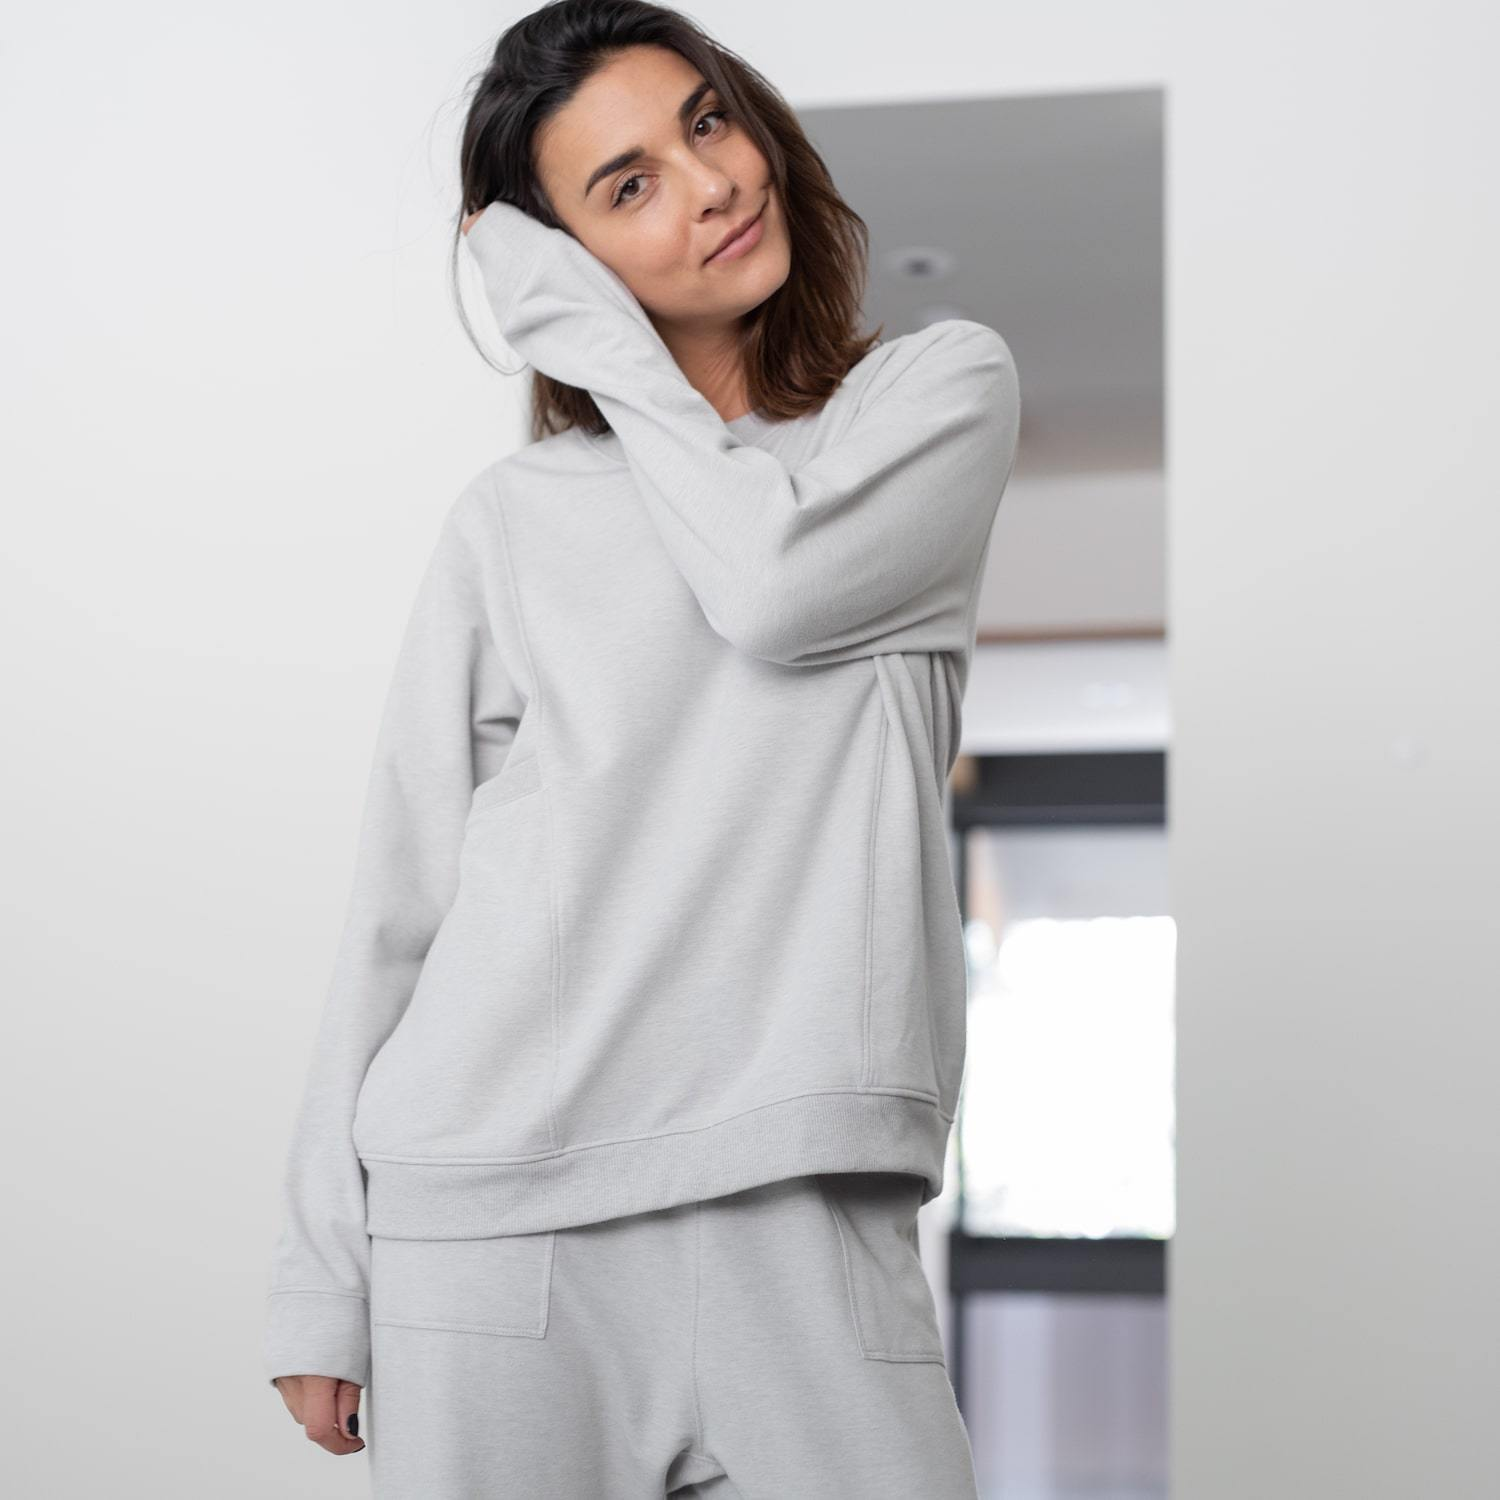 Lunya Sleepwear Cozy Pima Alpaca Fleece Relaxed Sweatshirt - #Cloud